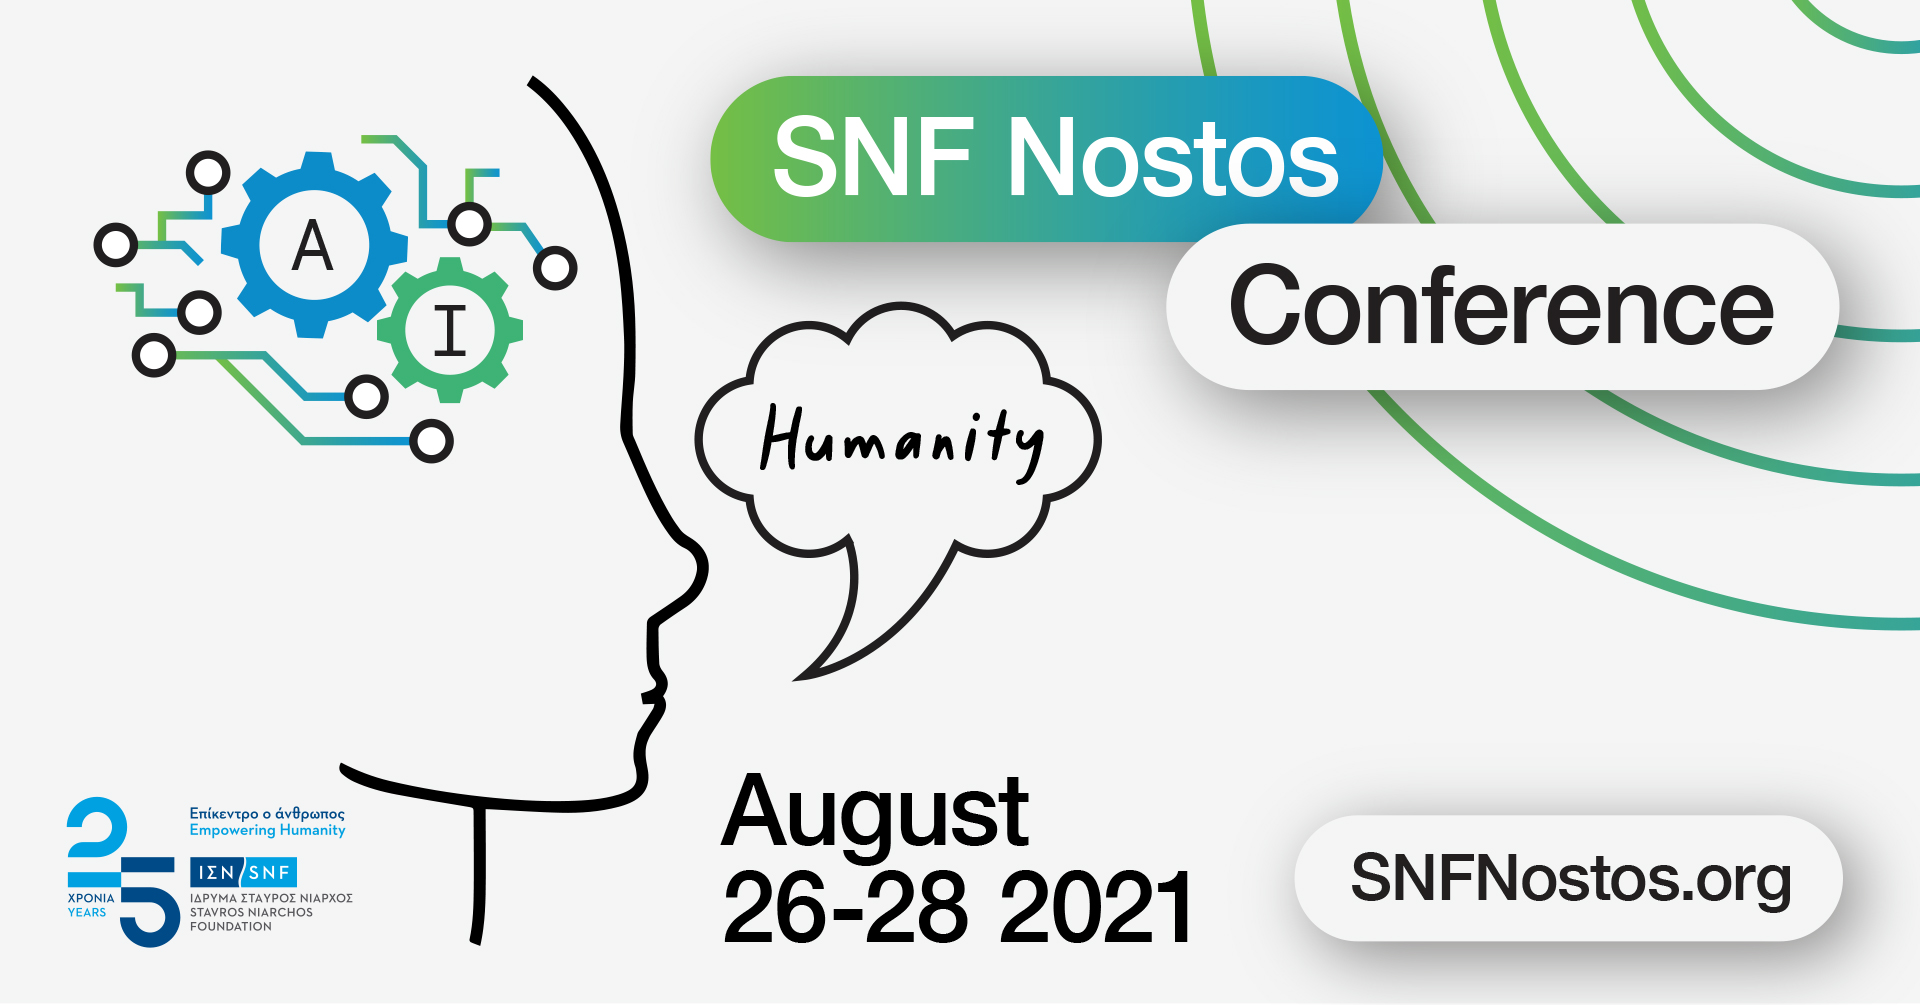 2021 SNF Nostos Conference: Humanity and Artificial Intelligence